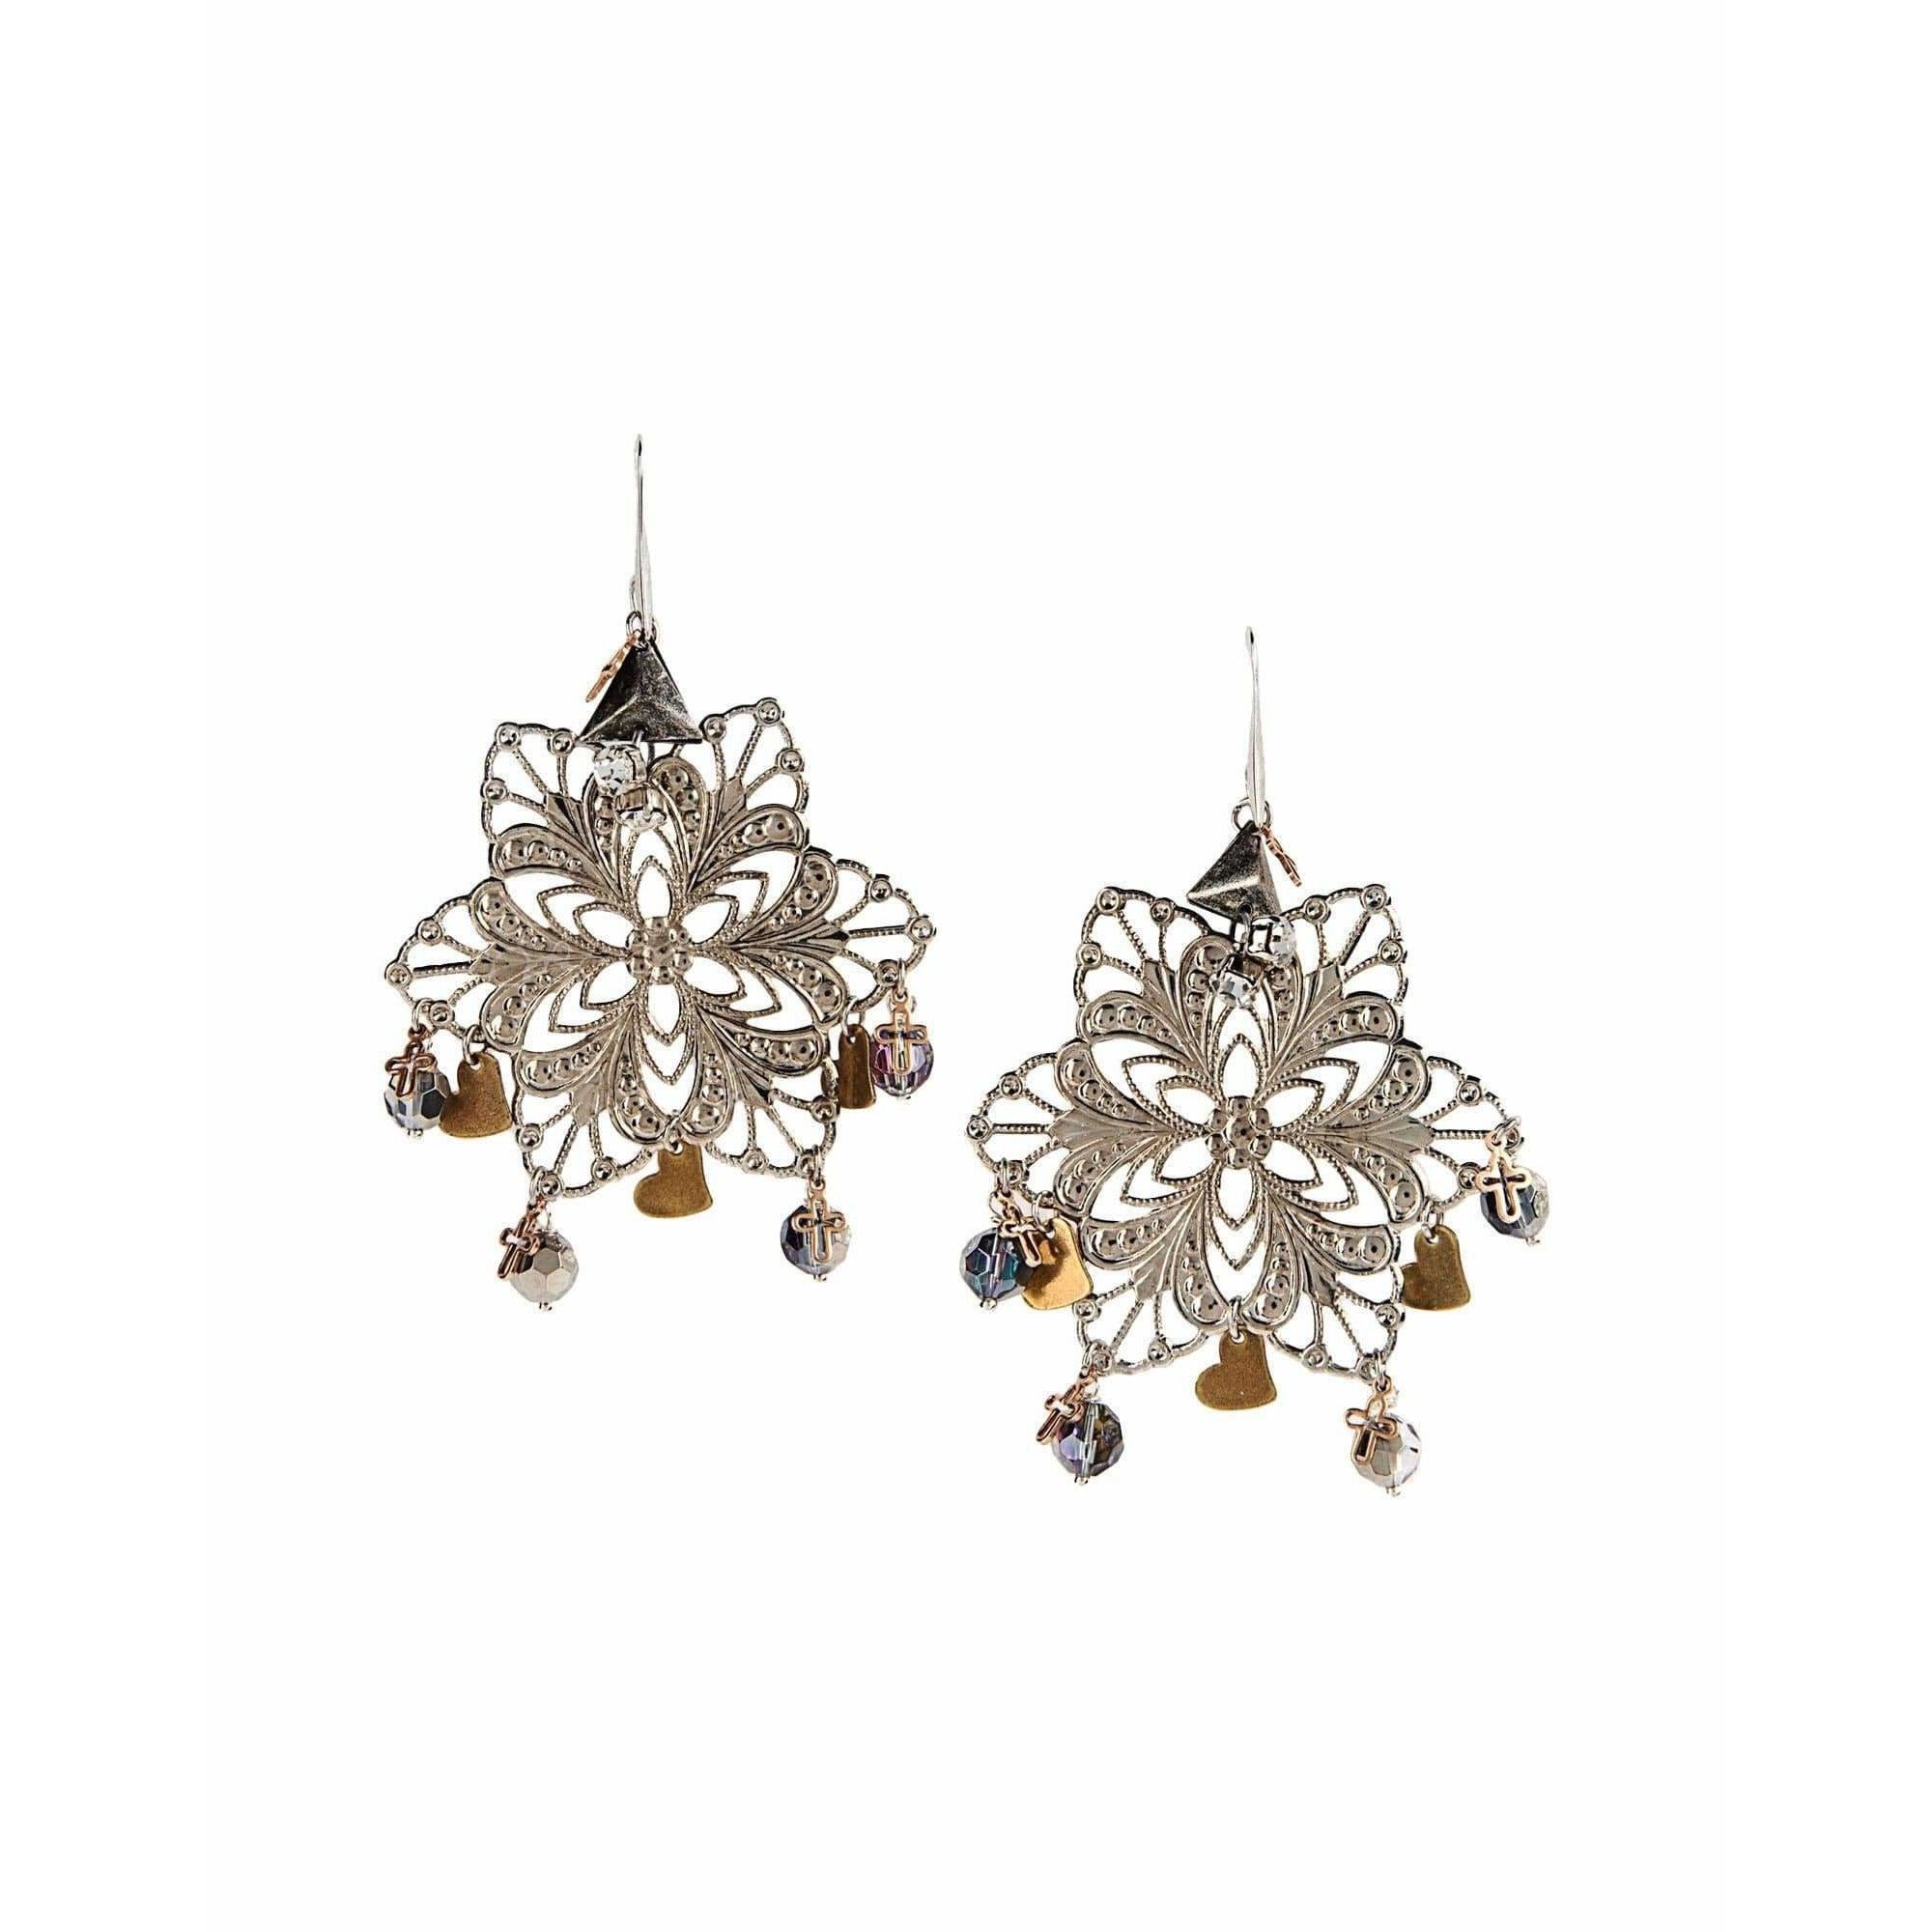 18kt Gold Plated and Silver Plated Chandelier Earrings With Crystals and Beads - Miraposa